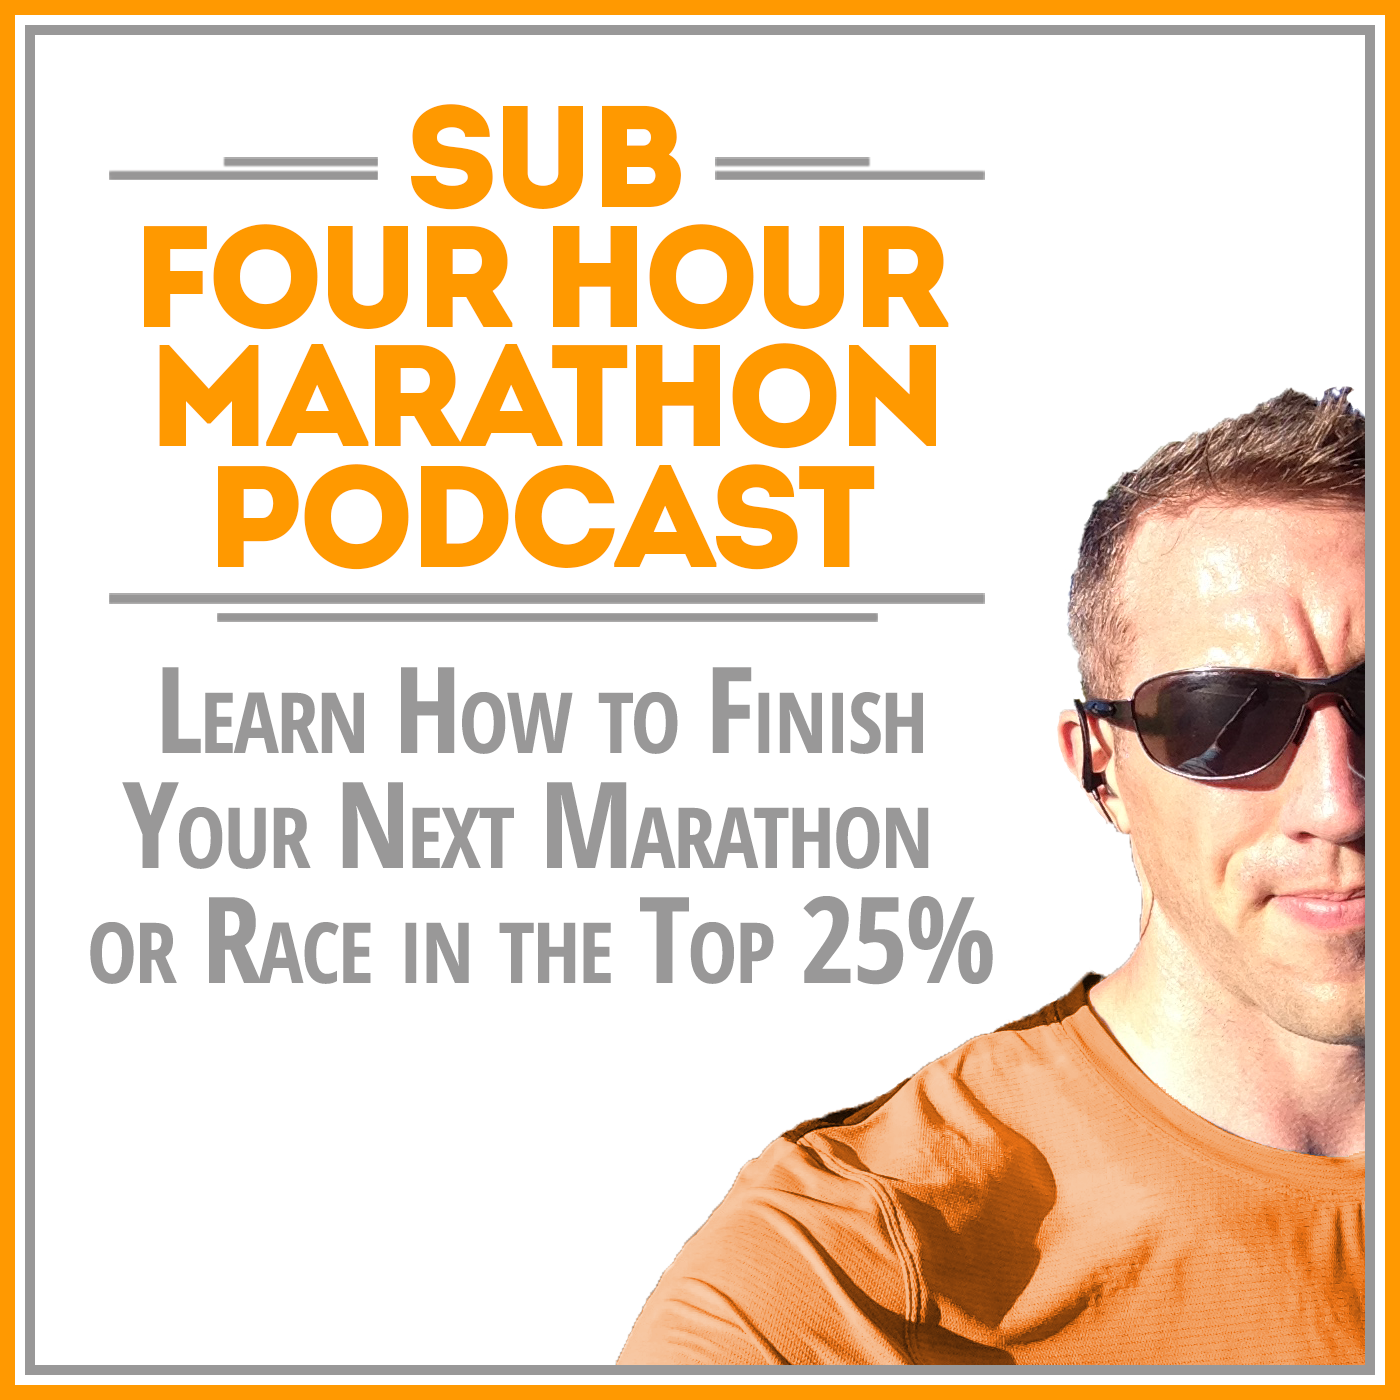 Sub Four Hour Marathon Podcast